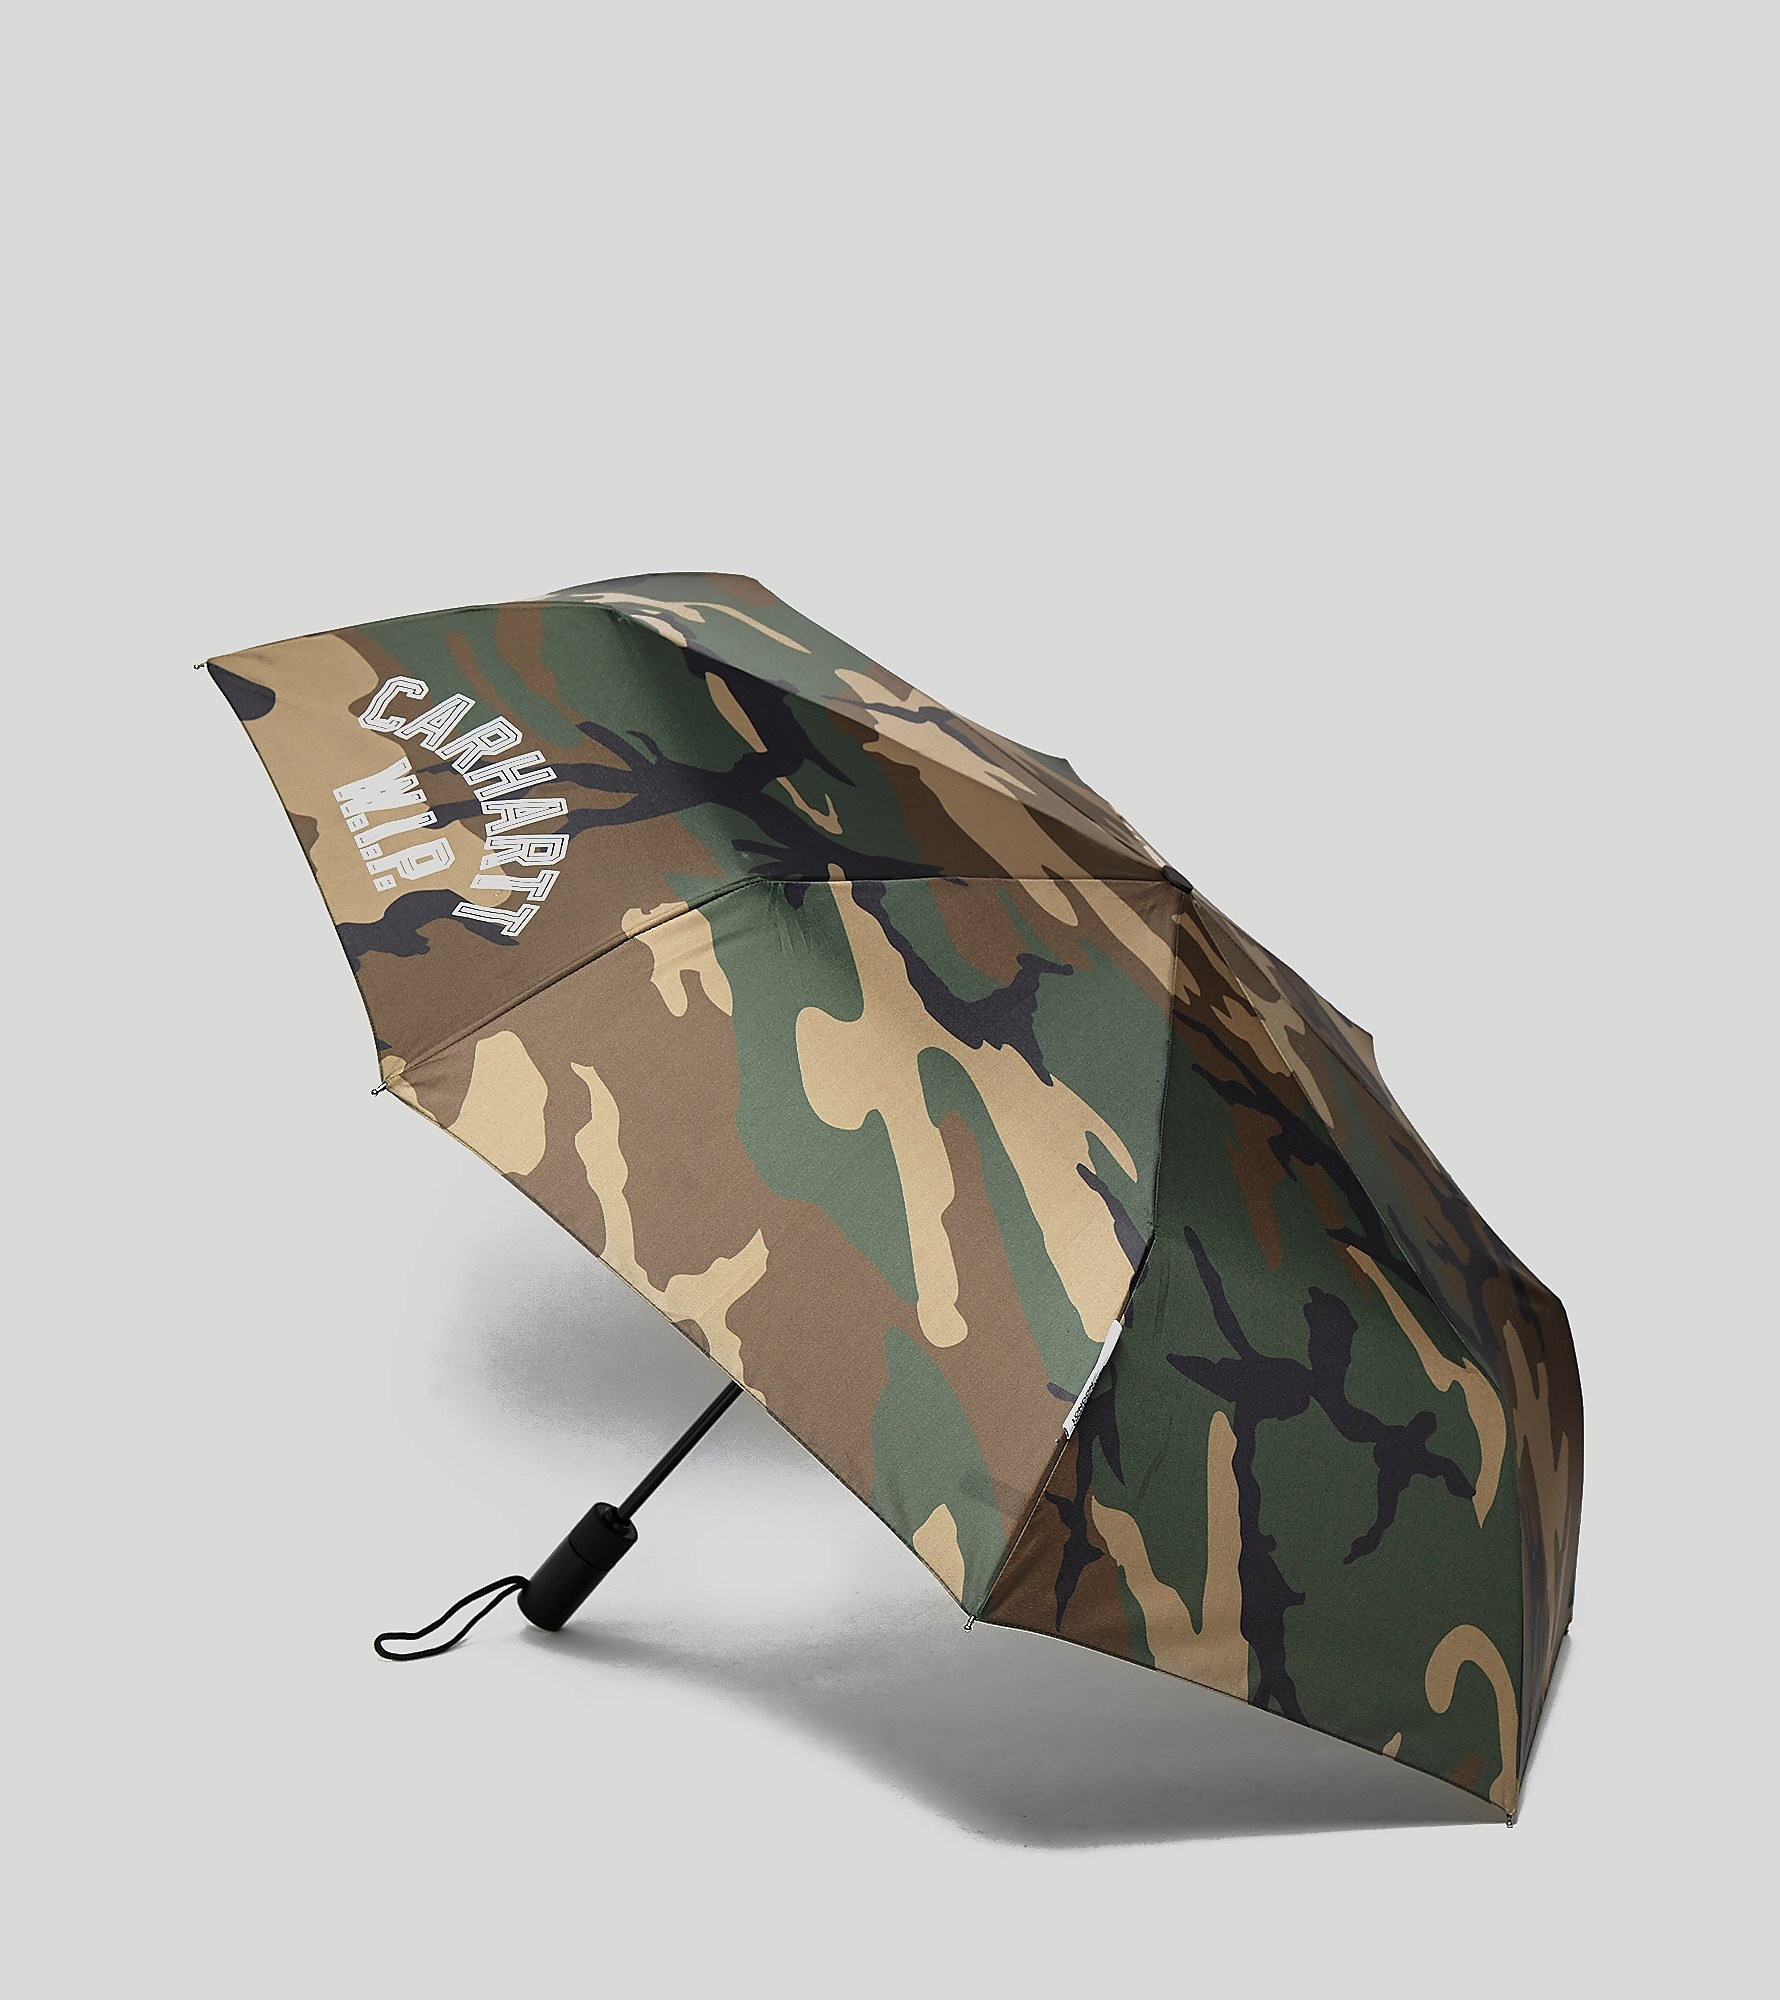 Carhartt WIP x London Undercover Umbrella